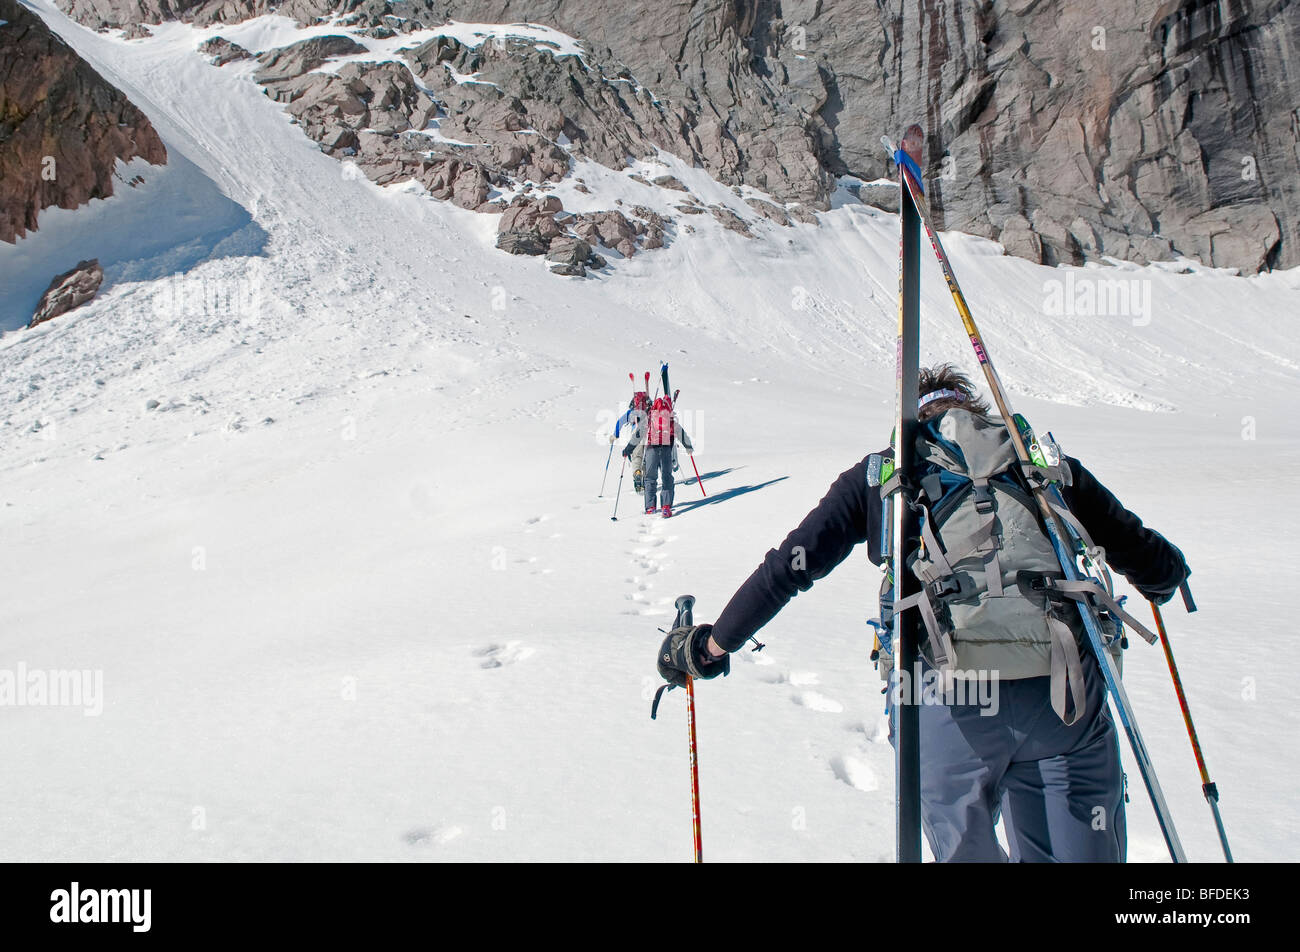 Three backcountry skiers approach a couloir in the spring in Rocky Mountain National Park, Colorado. - Stock Image